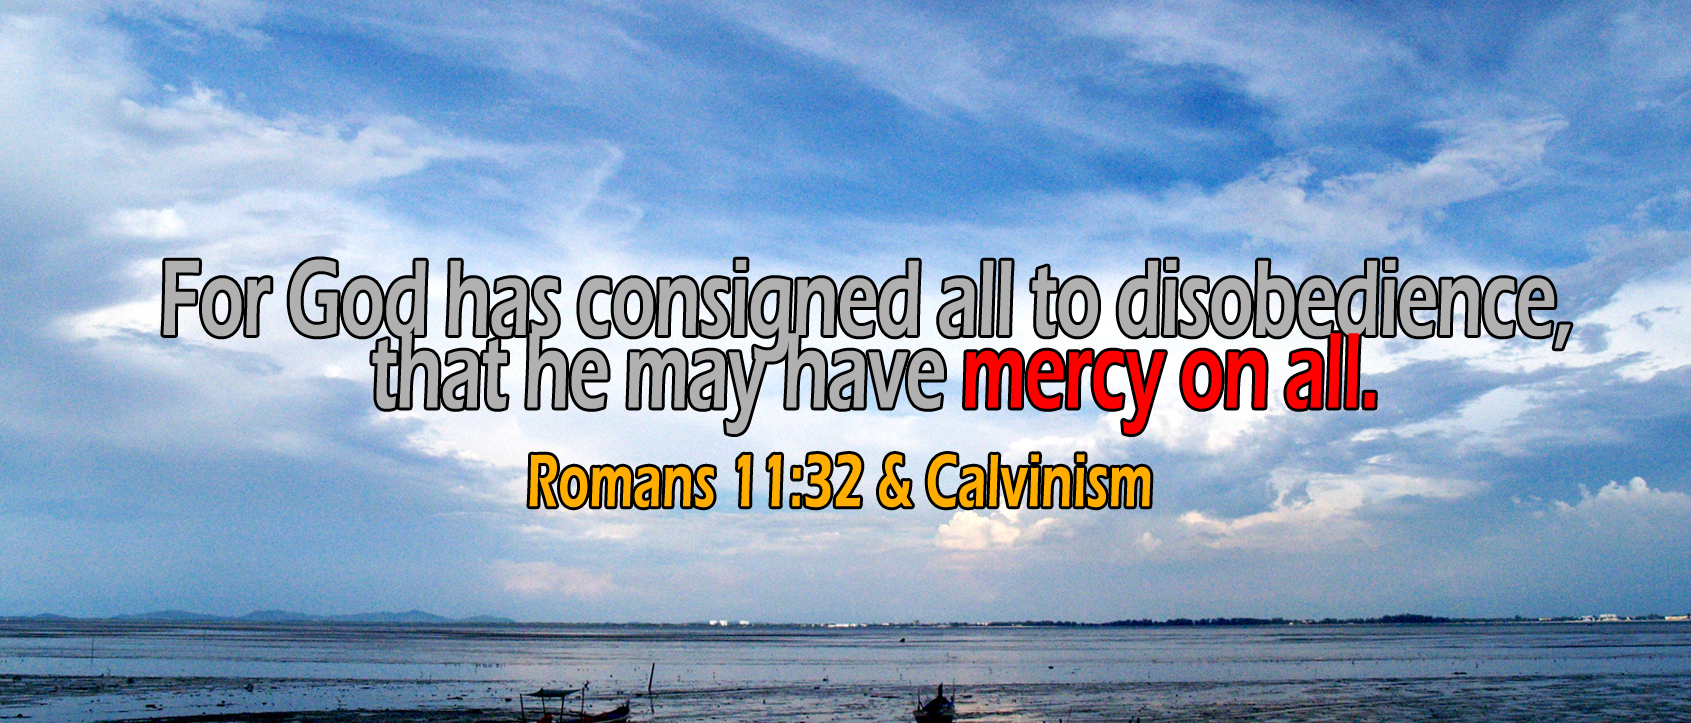 Romans 11:32, 'he may have mercy on all'